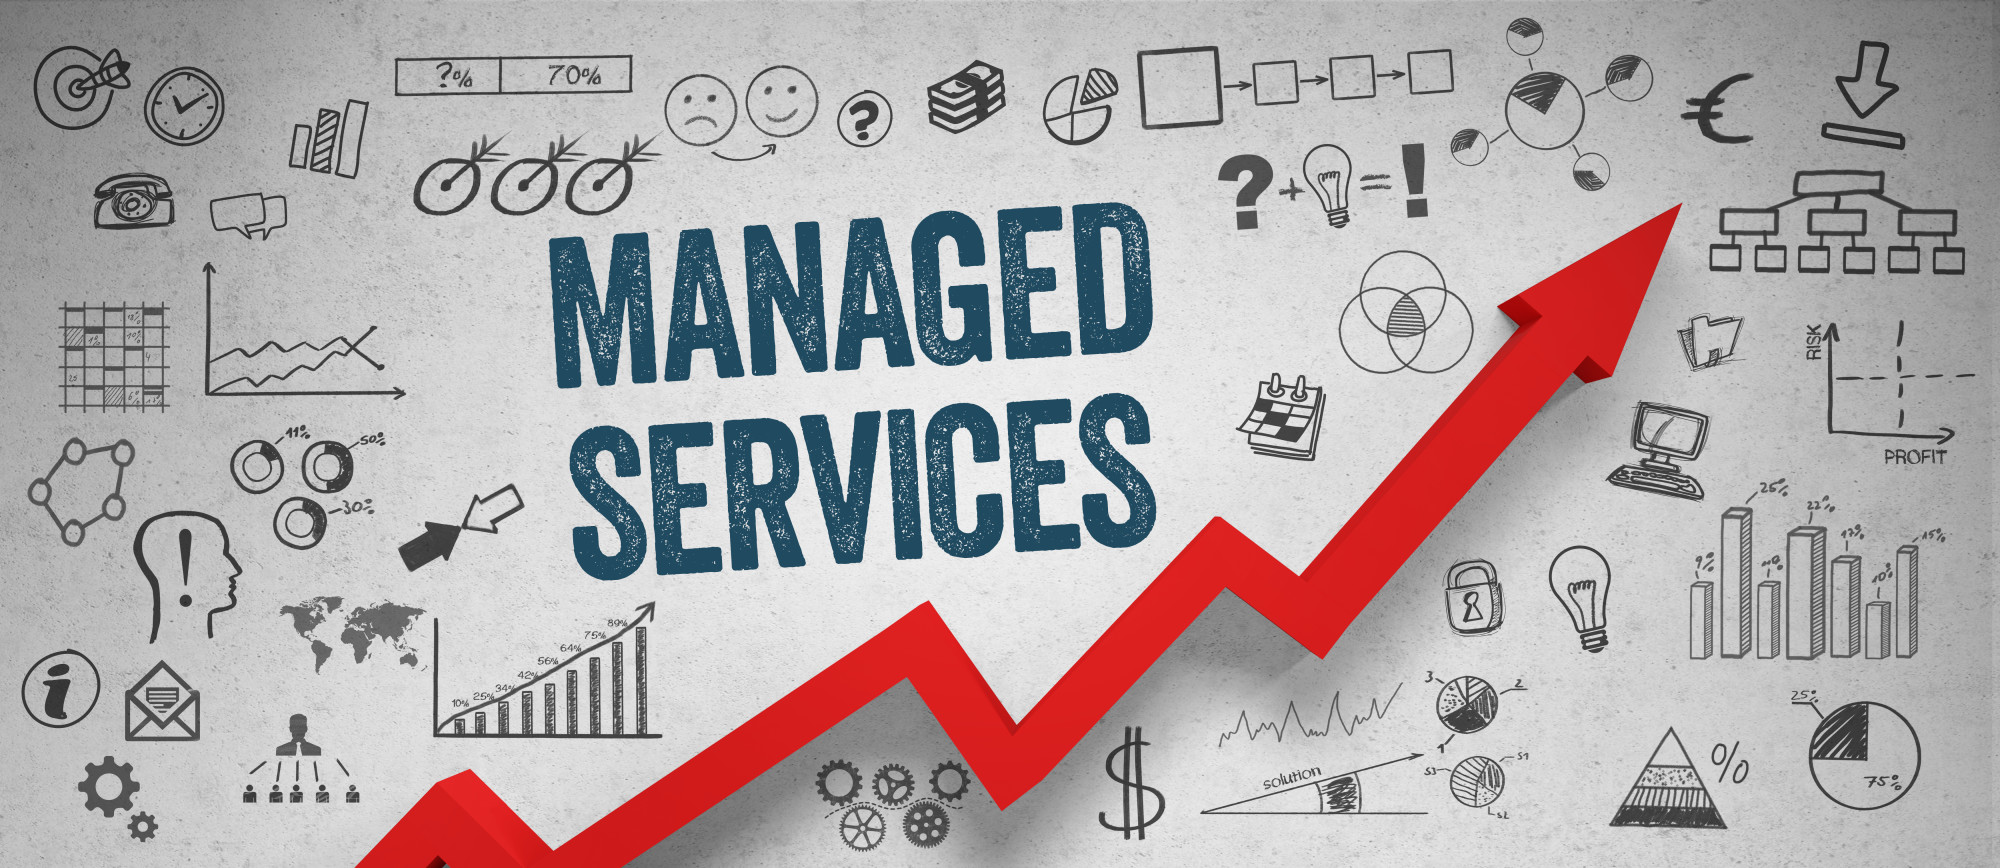 Managed Services Boosting a Business Visualized